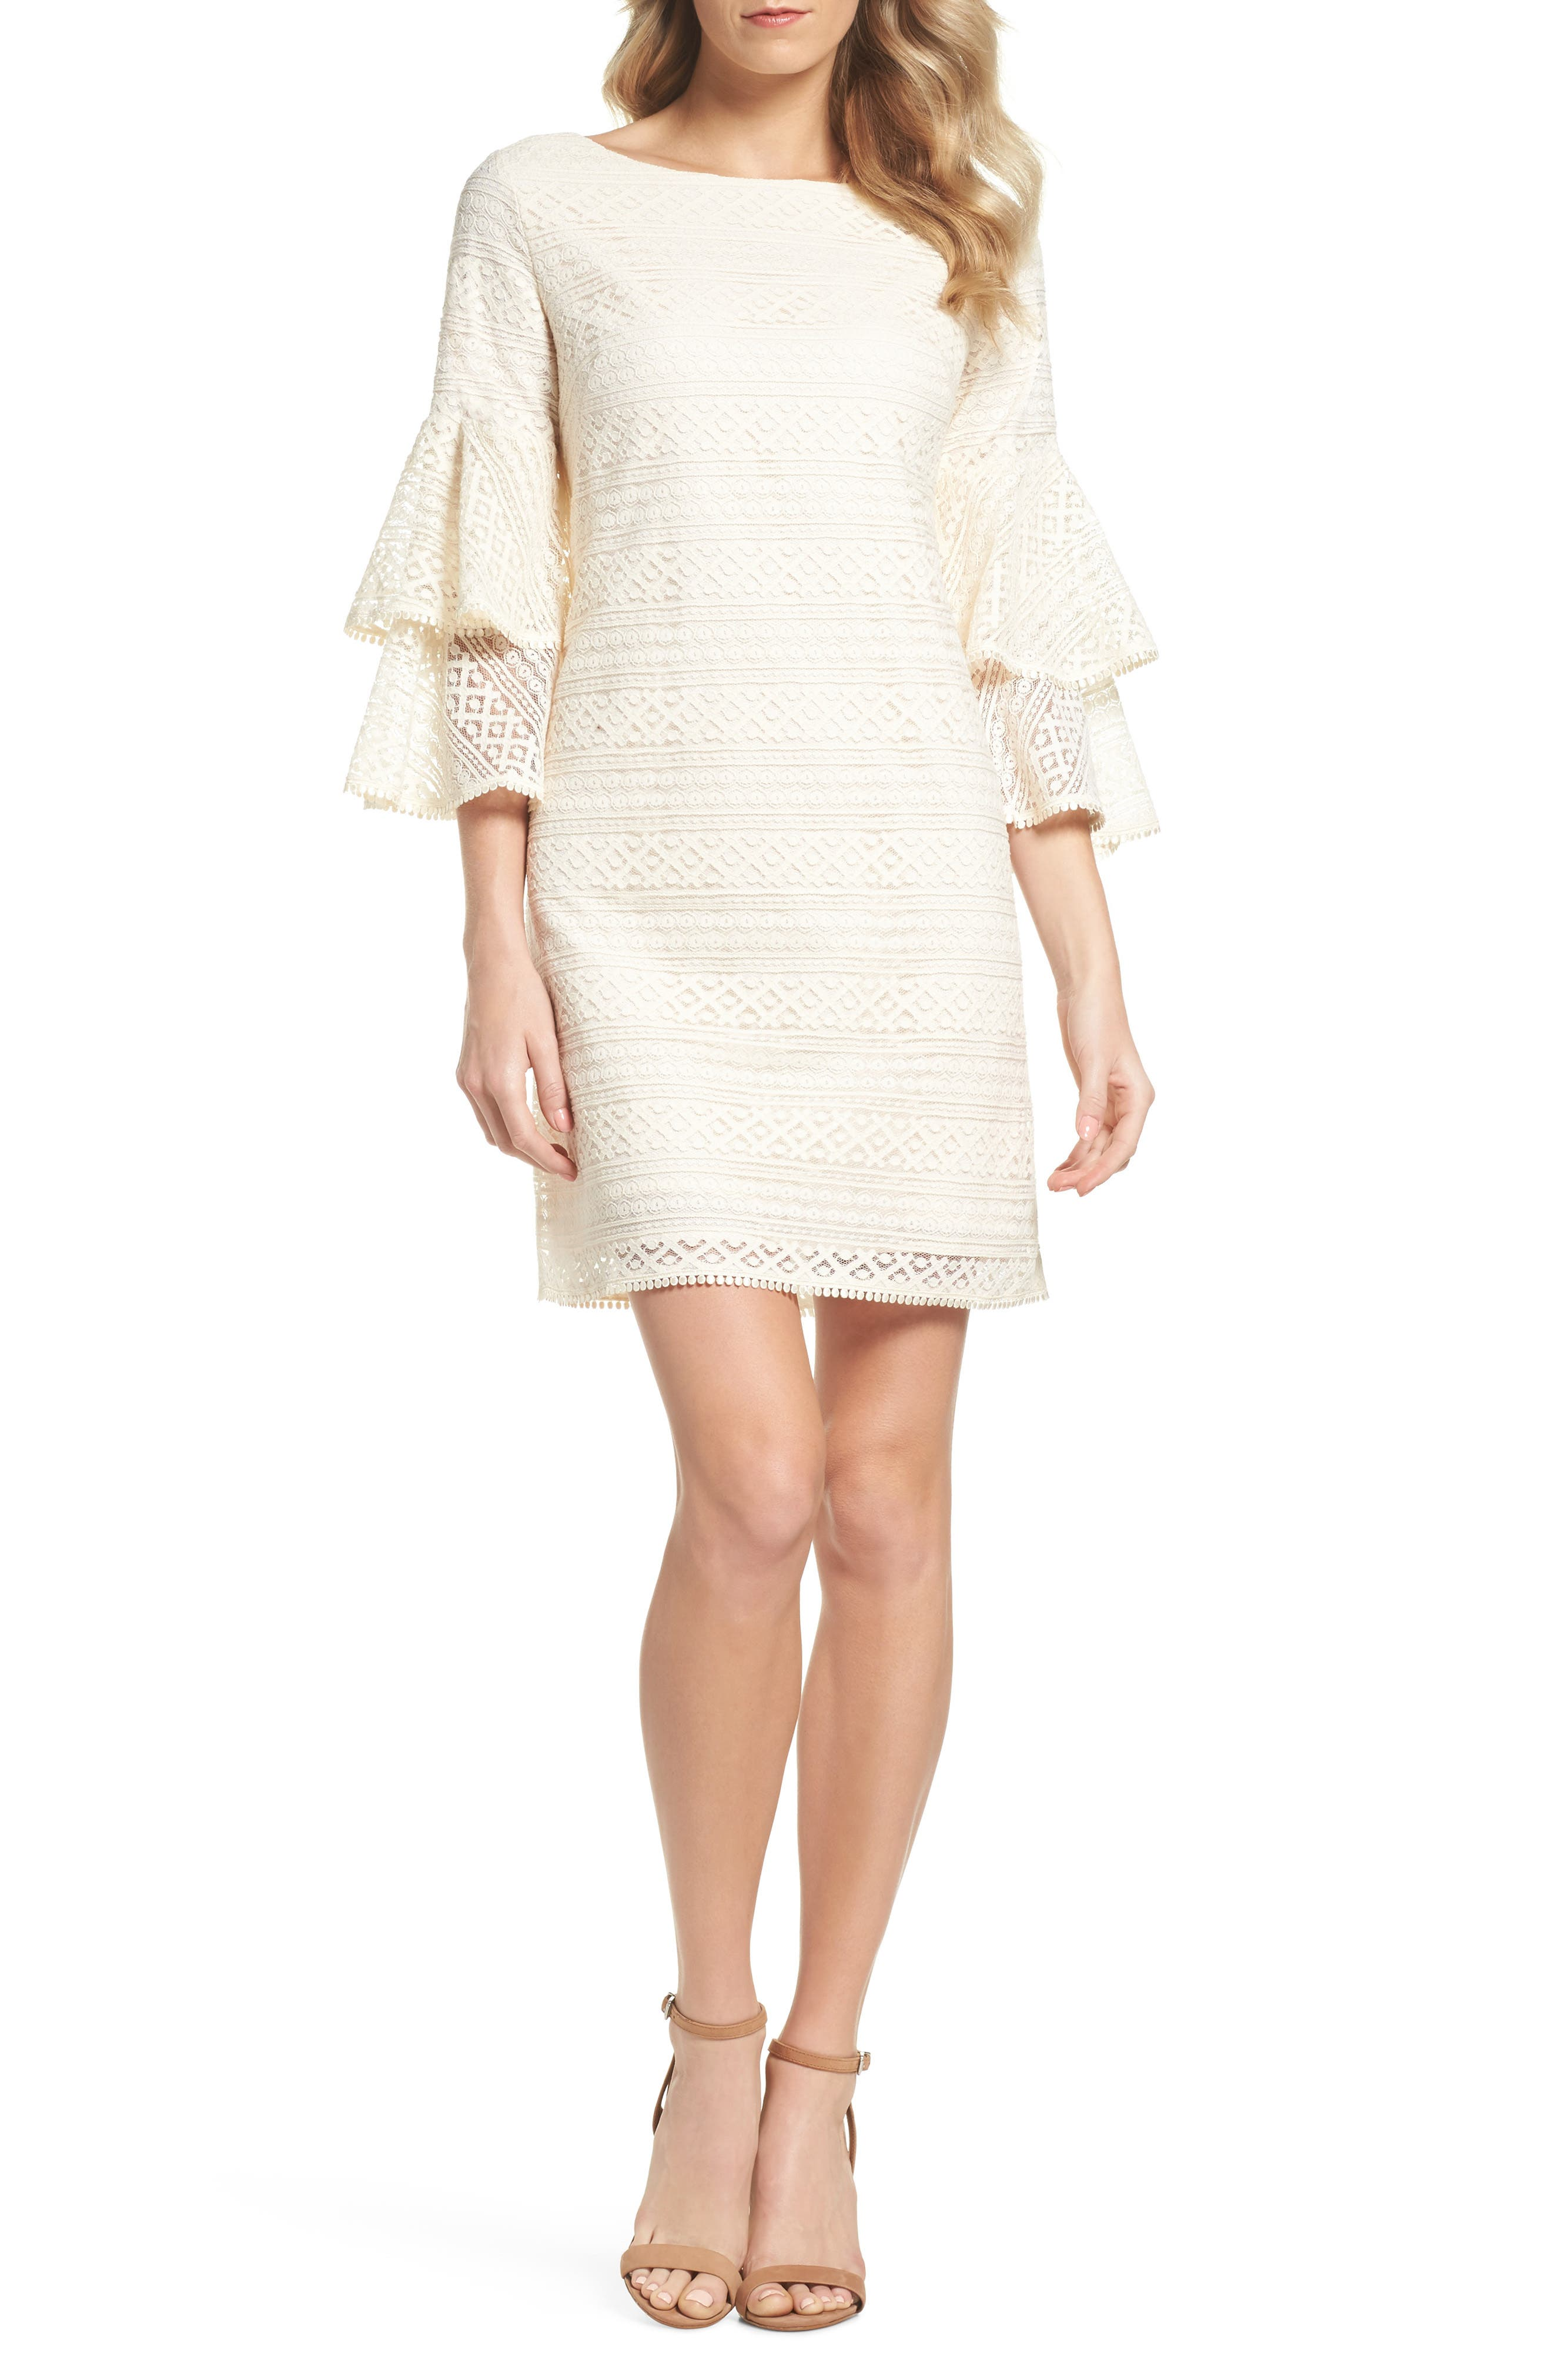 Bell Sleeve Lace Shift Dress,                             Main thumbnail 1, color,                             900